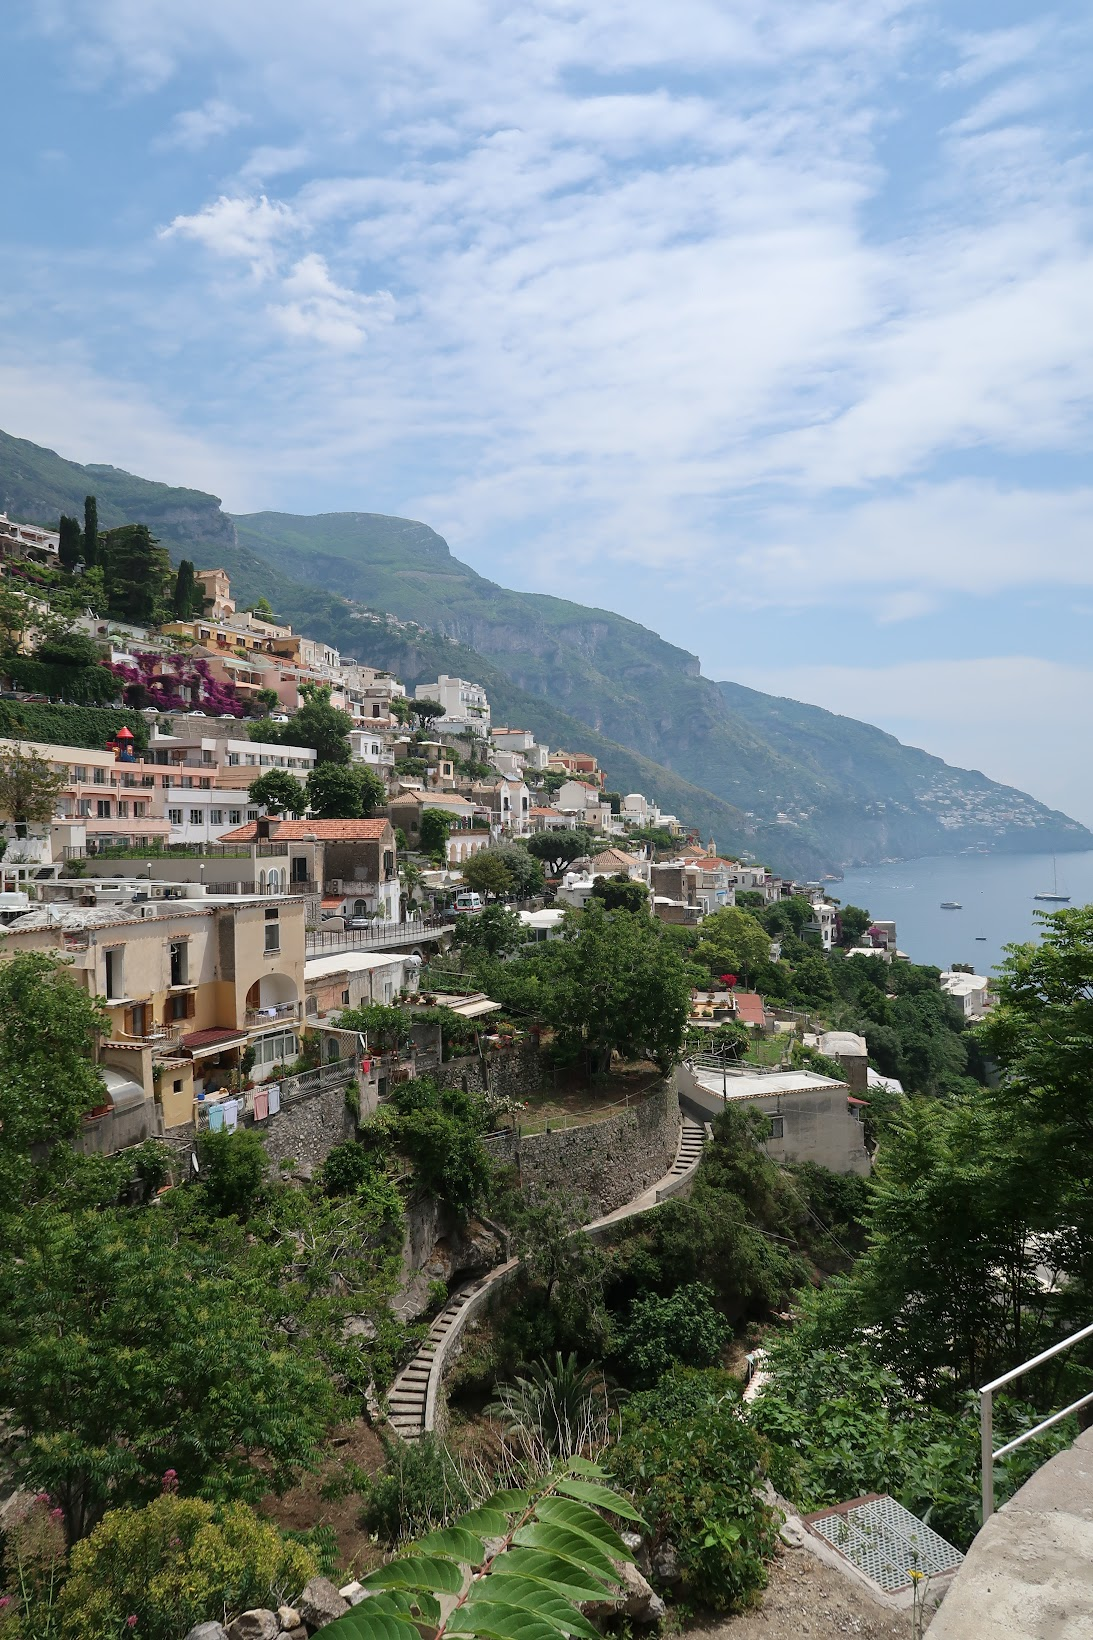 Travel guide to Minori and the Amalfi coast, Minori Italy, what to wear in Minori Italy, what to eat in Minori Italy, Traveling to italy this summer